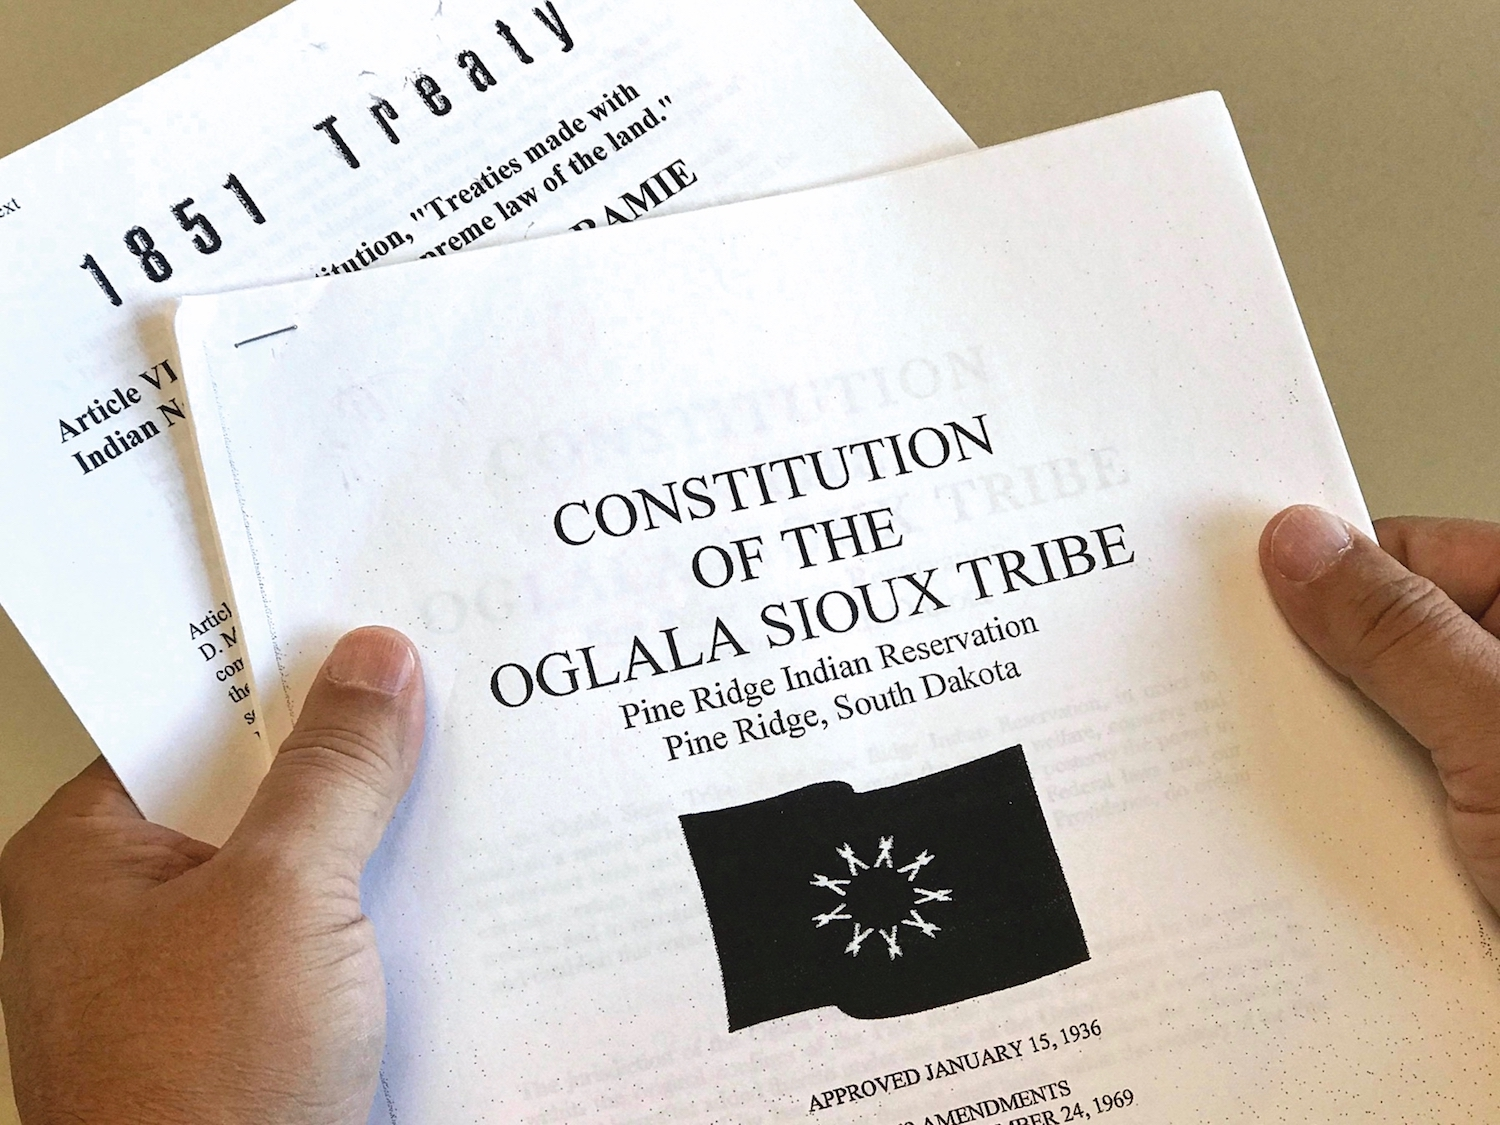 Jeffrey Whalen: Oglala Sioux Tribe heads in right direction with constitution